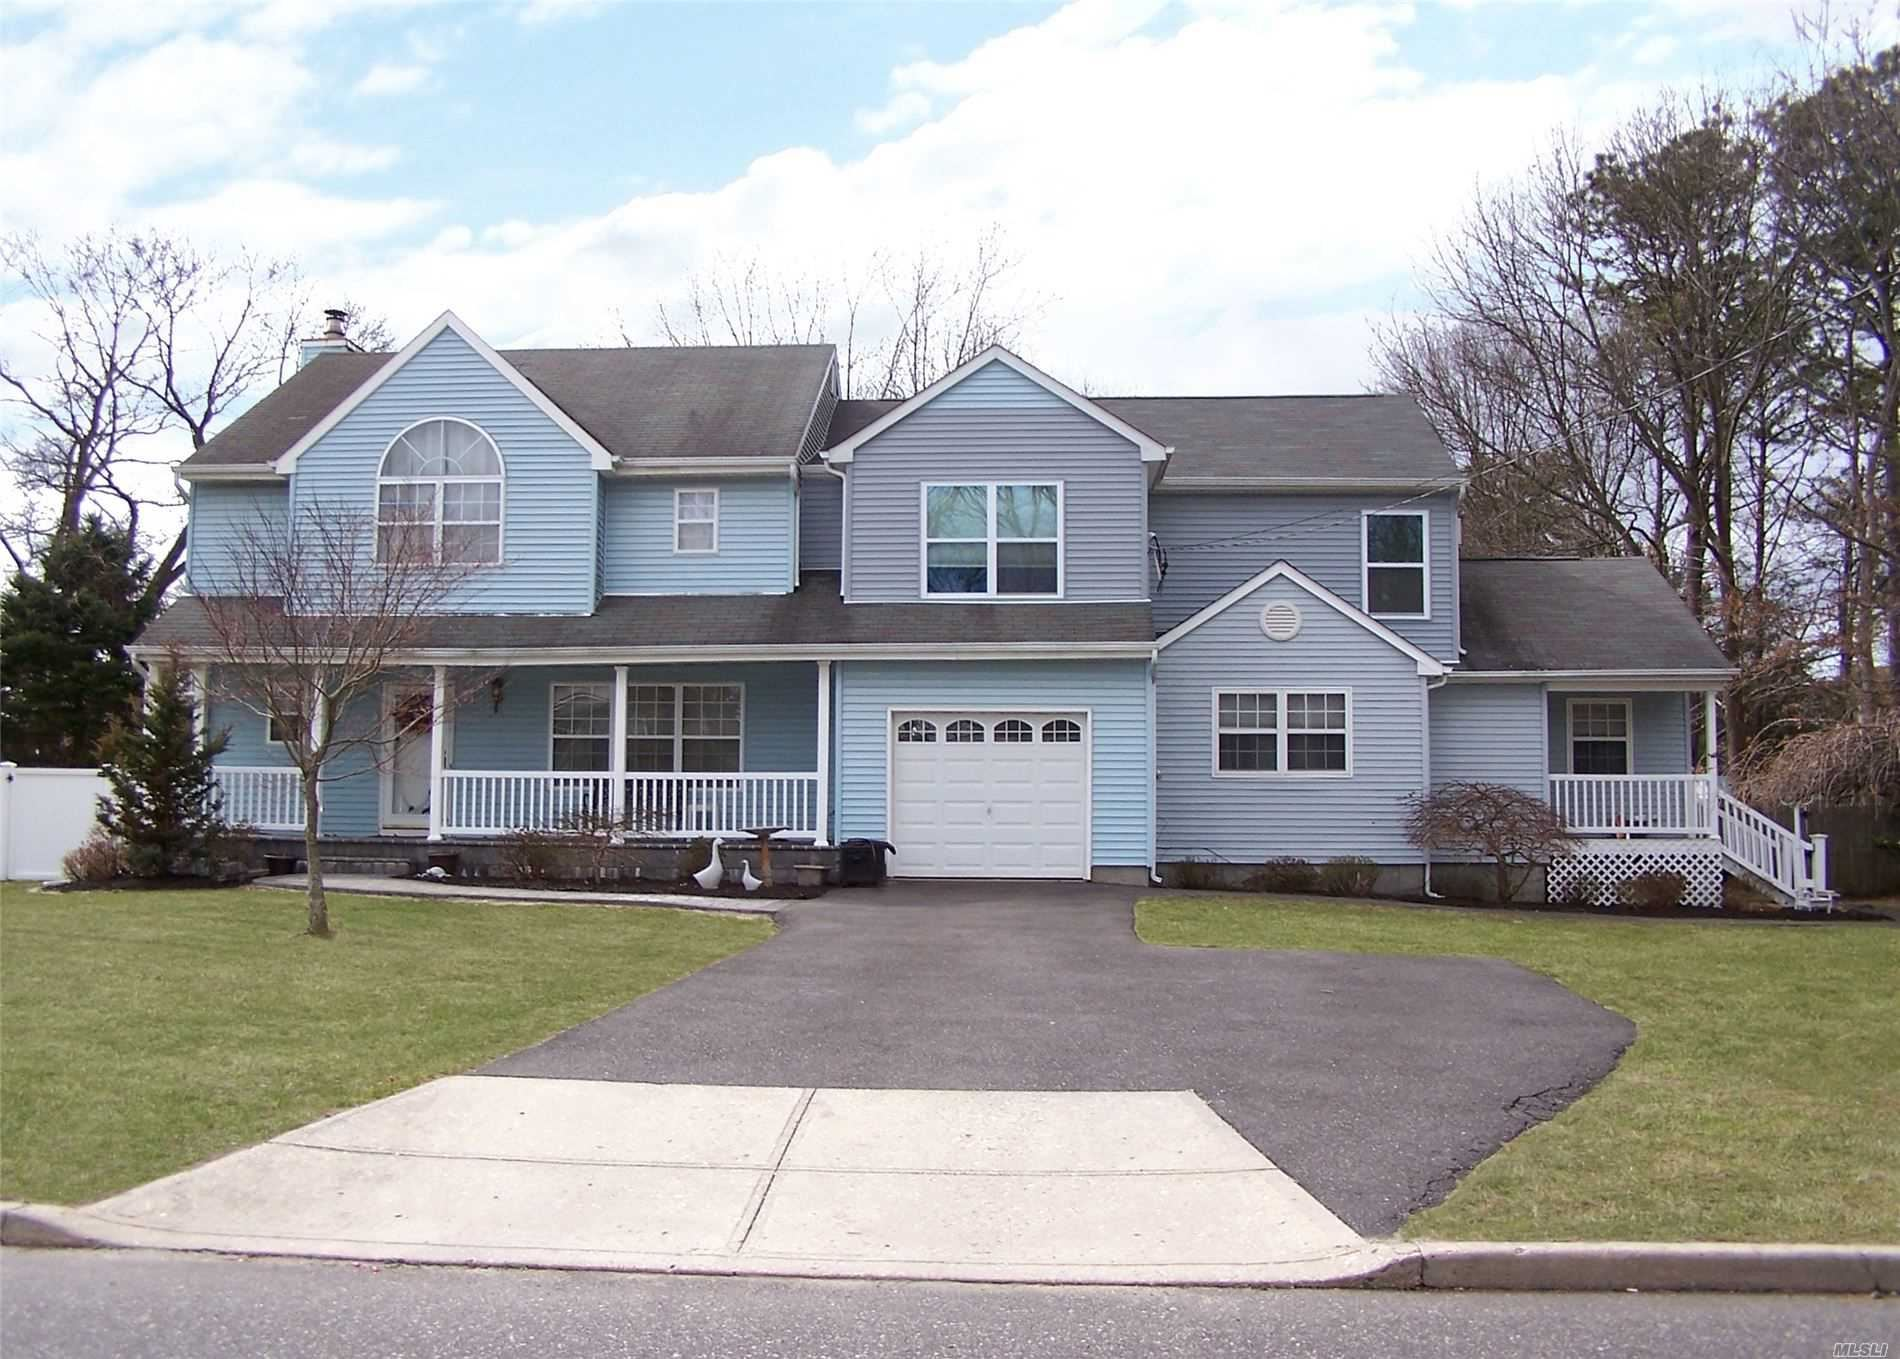 86 N Coleman Road, Centereach, NY 11720 - MLS#: 3208888